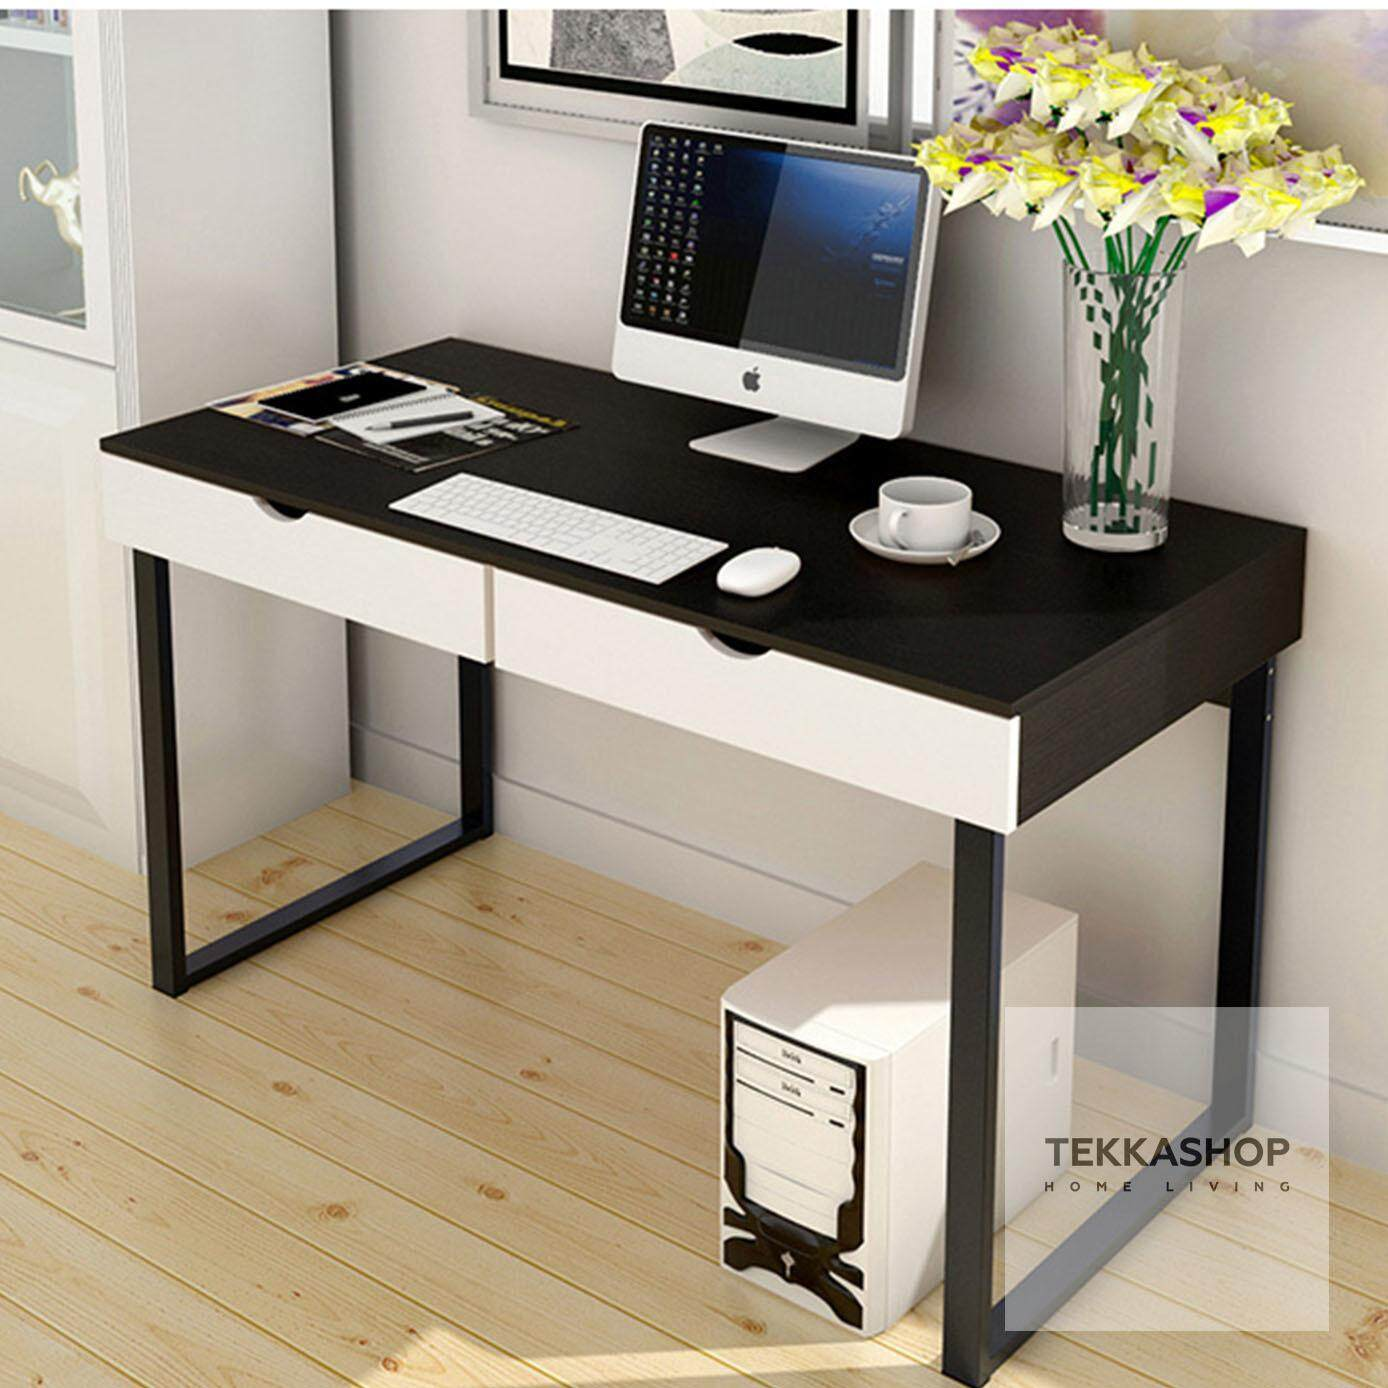 Tekka Gdot858100s Simple Modern Computer Table Study Desk Home Workstation W Drawer Black